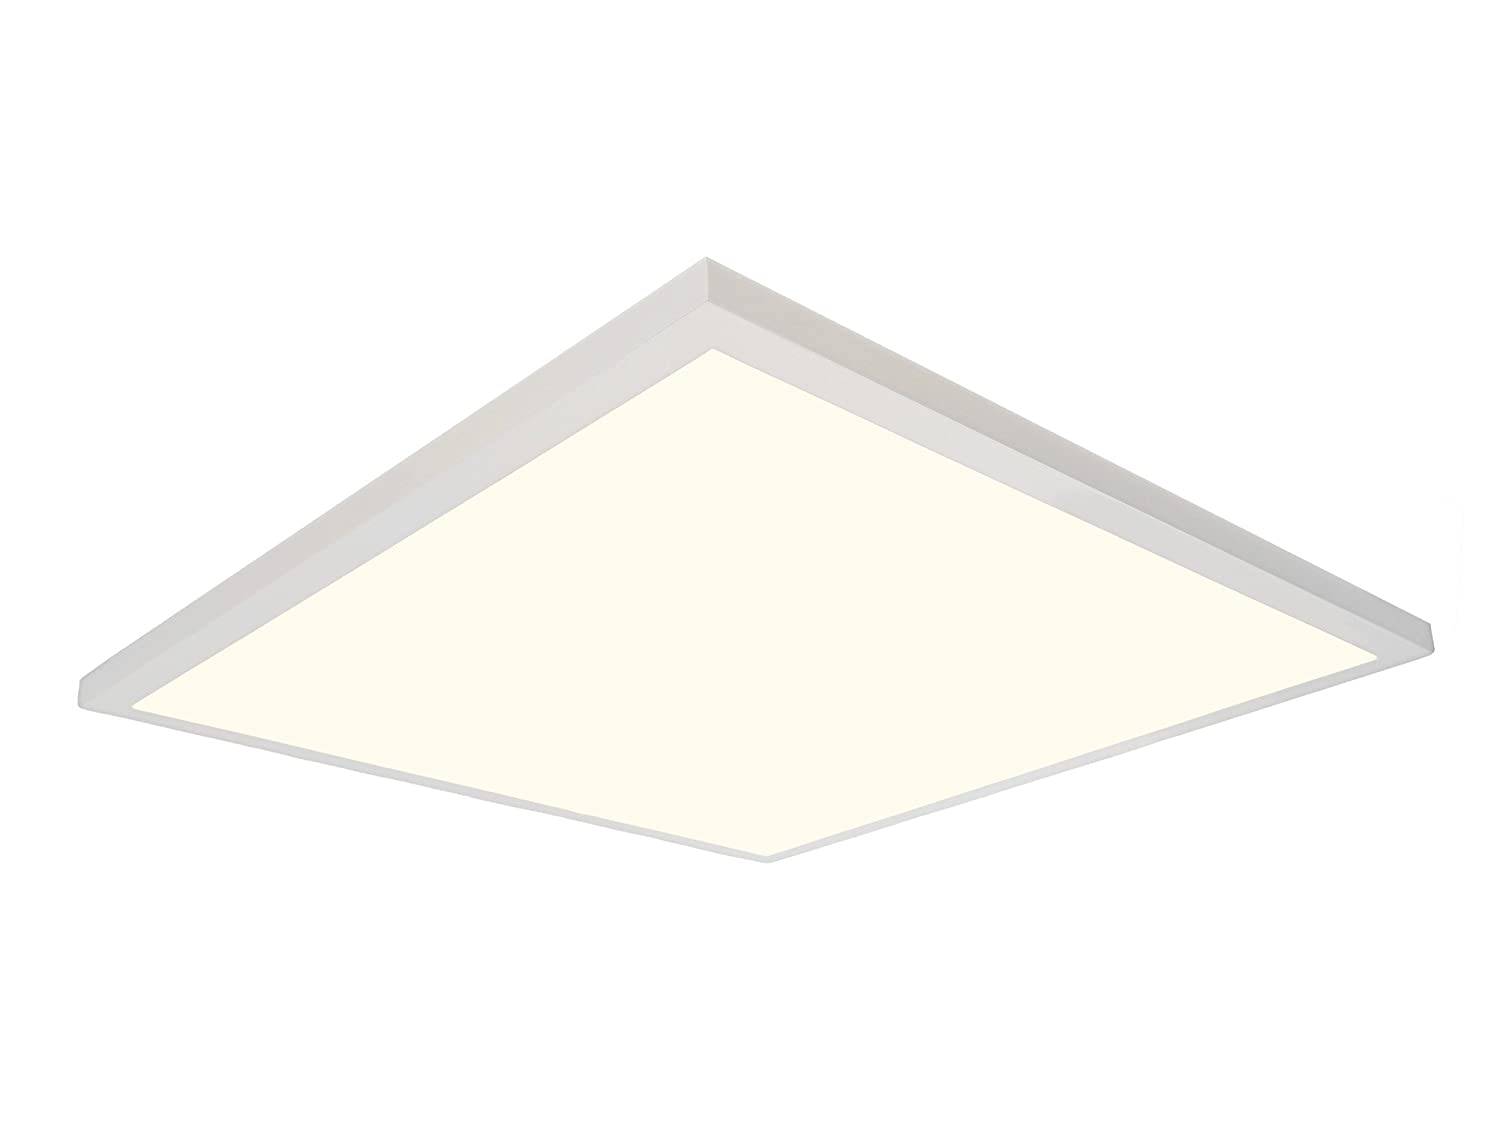 Designers fountain pf2240xmd27 2700k led panel 2 x 2 ultra thin edge lit 40w flat light residential flushmount surface mount commercial drop ceiling